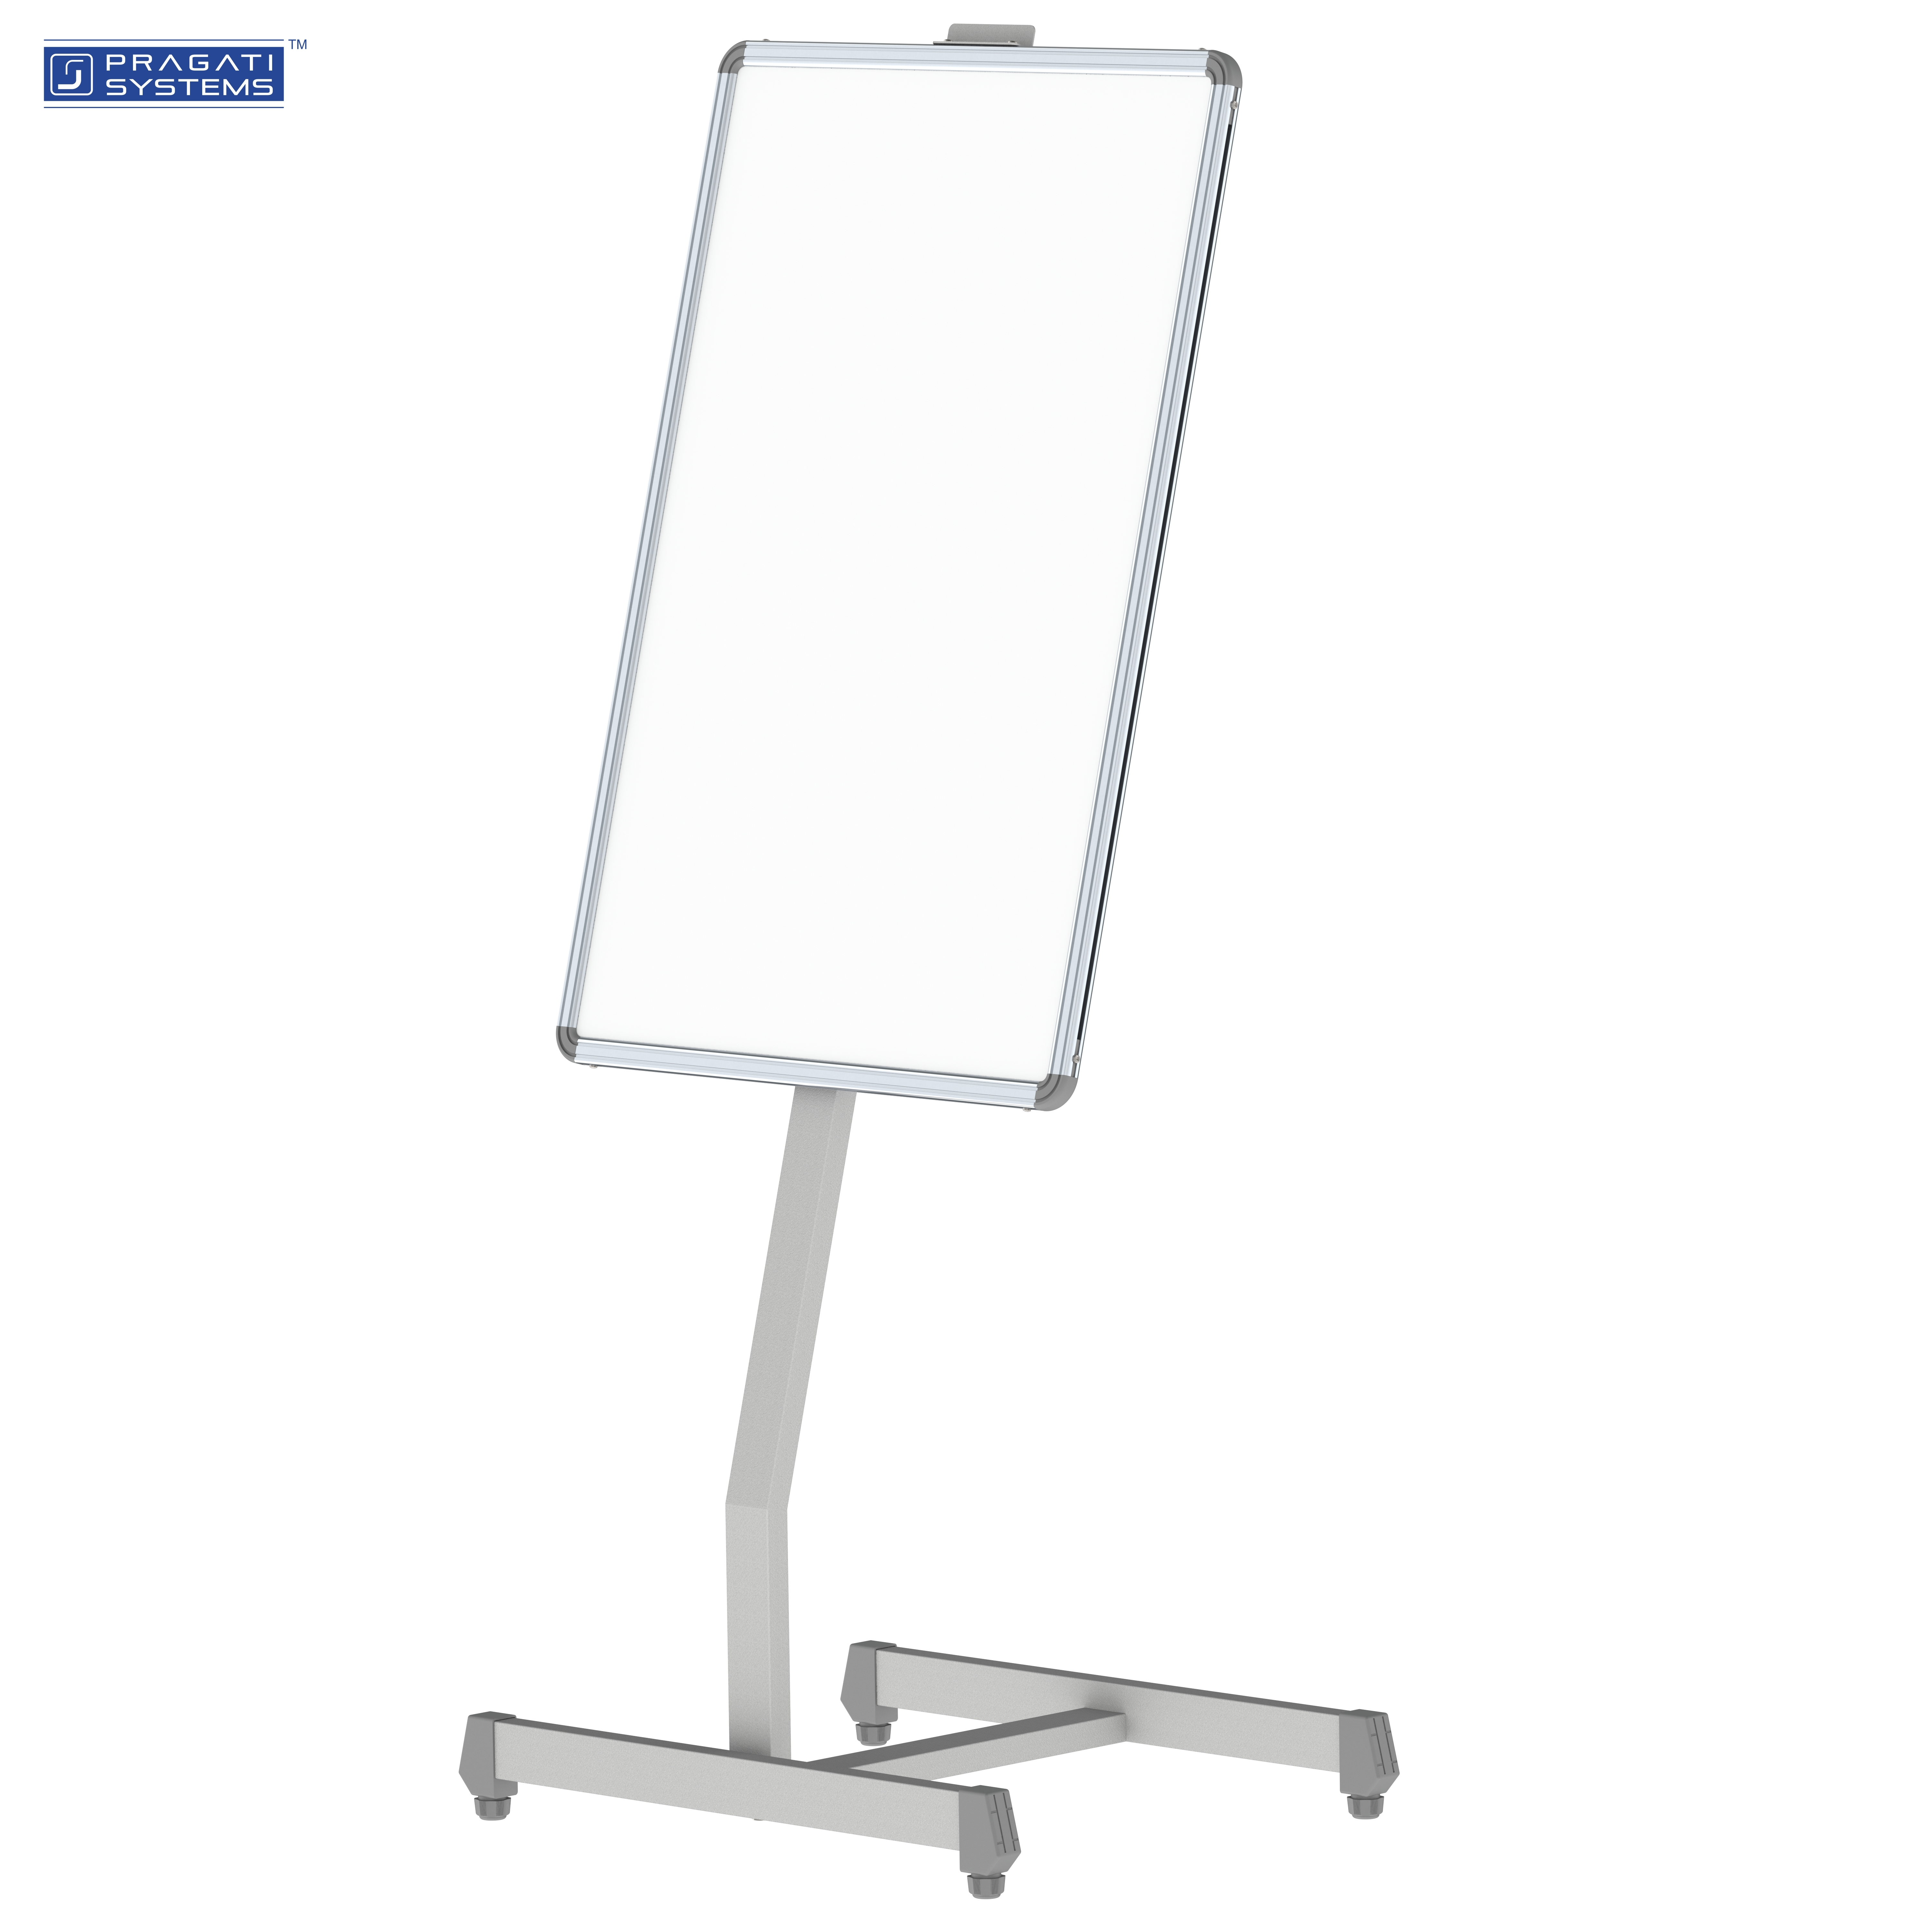 Lobby & Wecome Board Display Stand 3x4 Feet